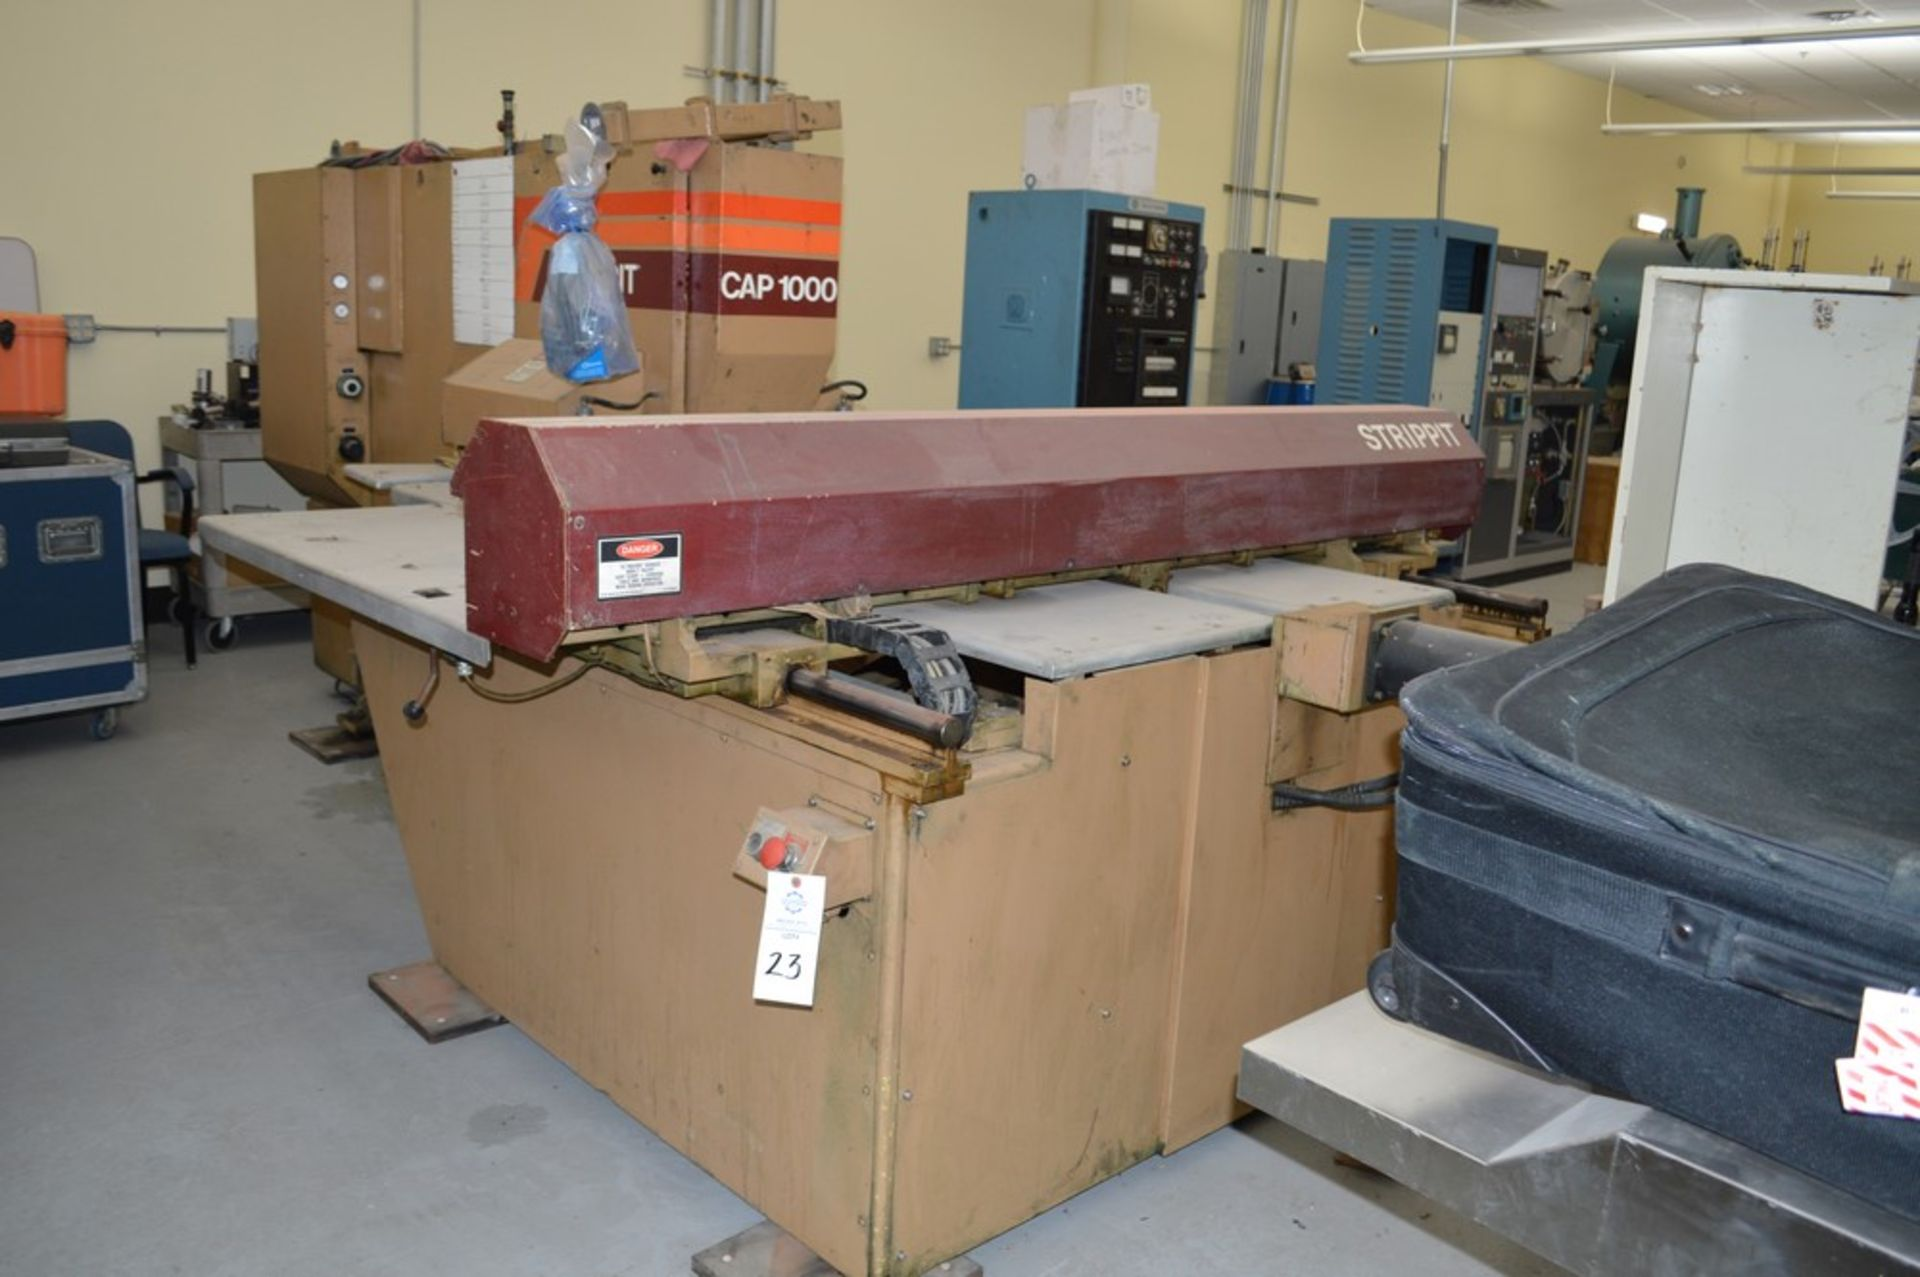 1985 Del Arco Strippit 1000 lbs punch, with auxilliary transfer table, 20 stations, blue 4 leg